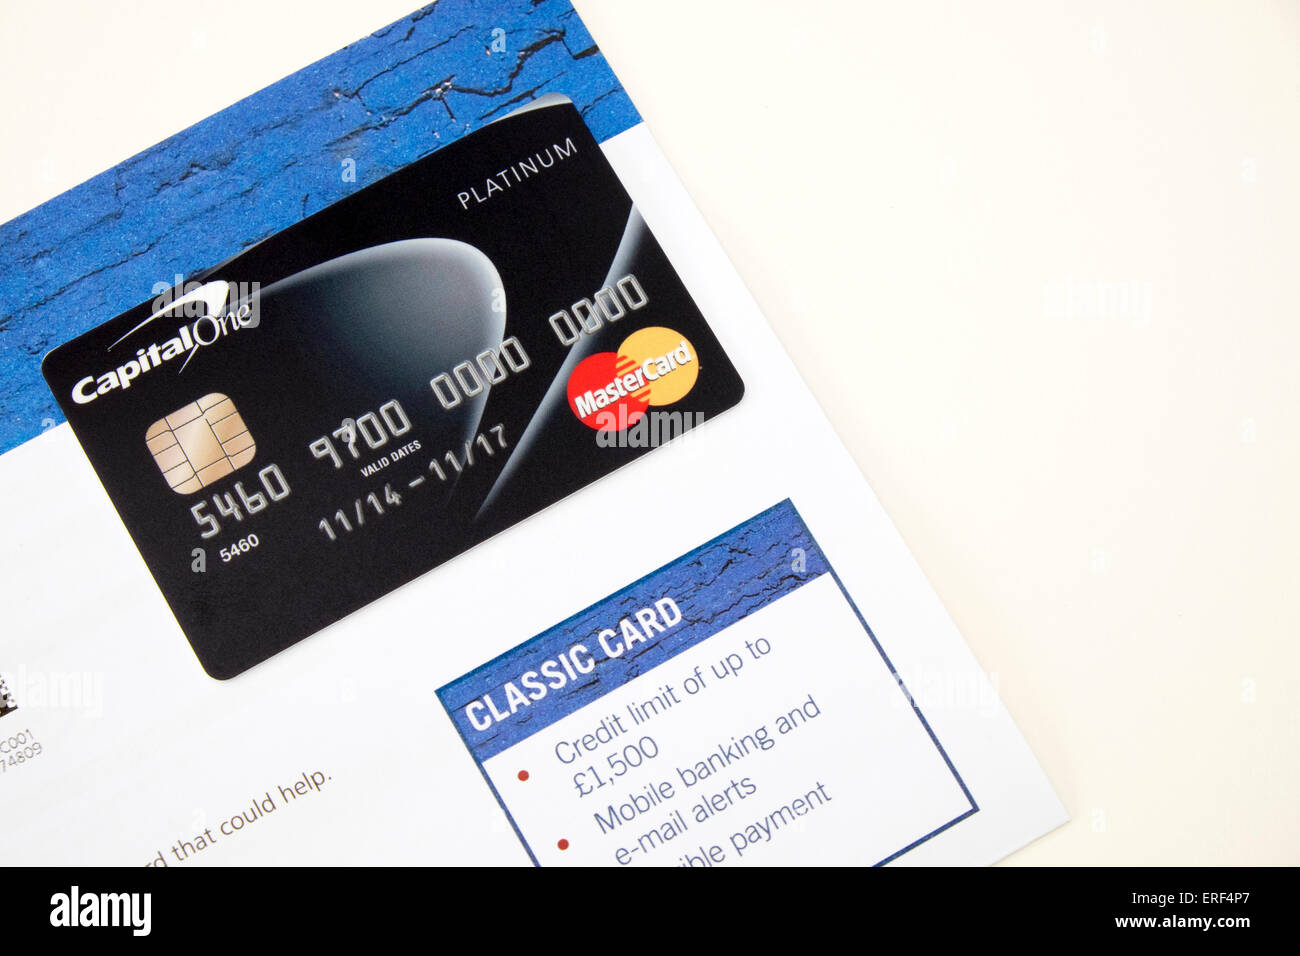 capital one credit card mail payments